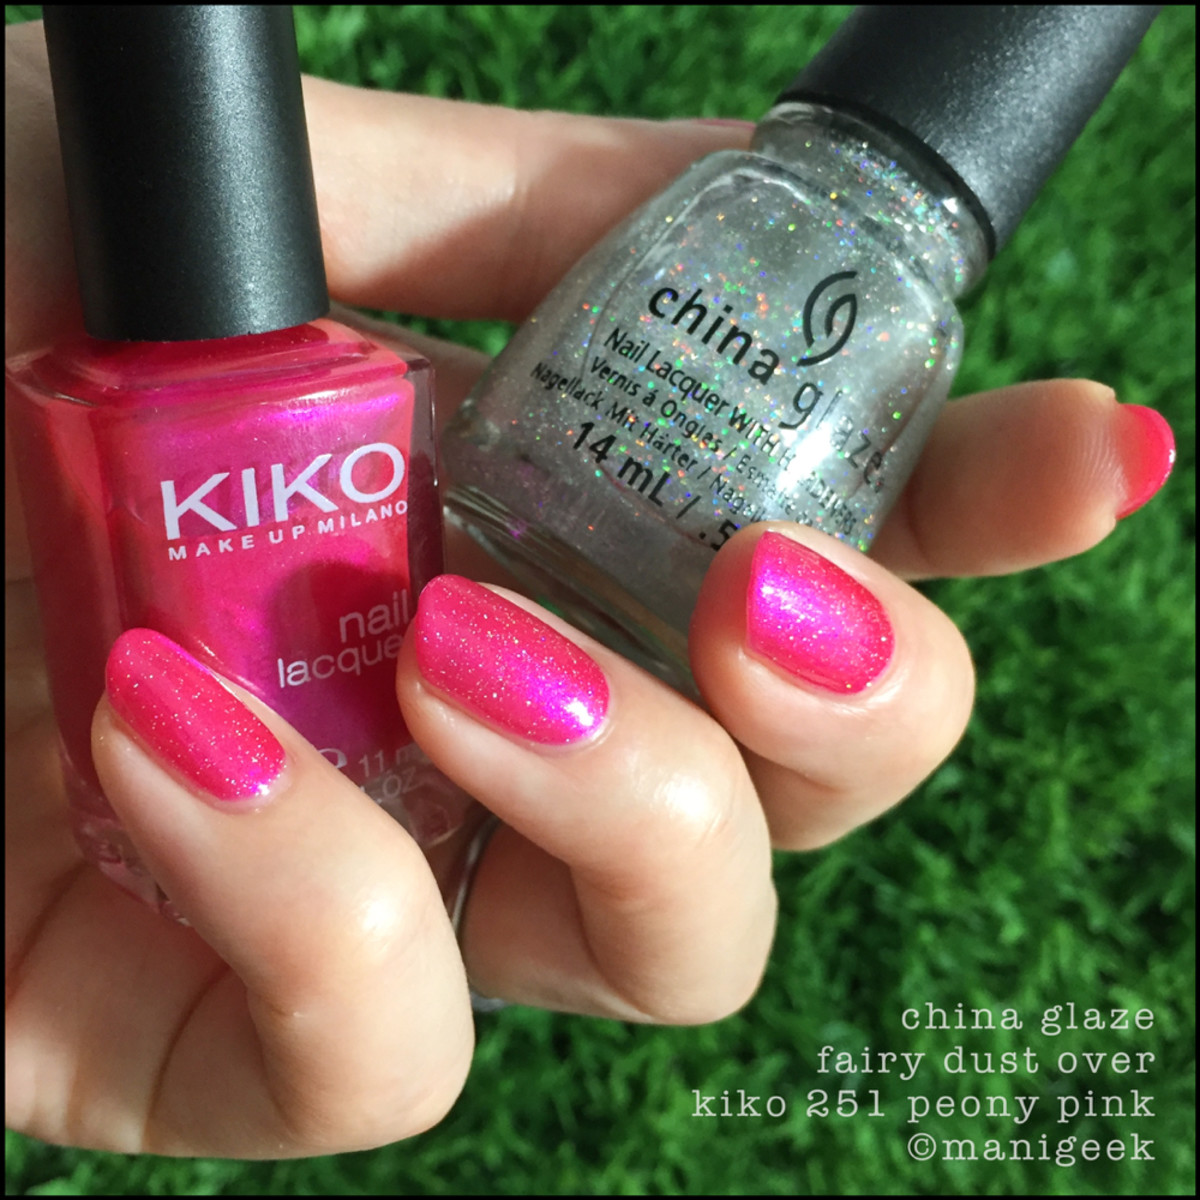 China Glaze Fairy Dust over Kiko 251 _ Manigeek 1000 Days of Untrieds Week 3